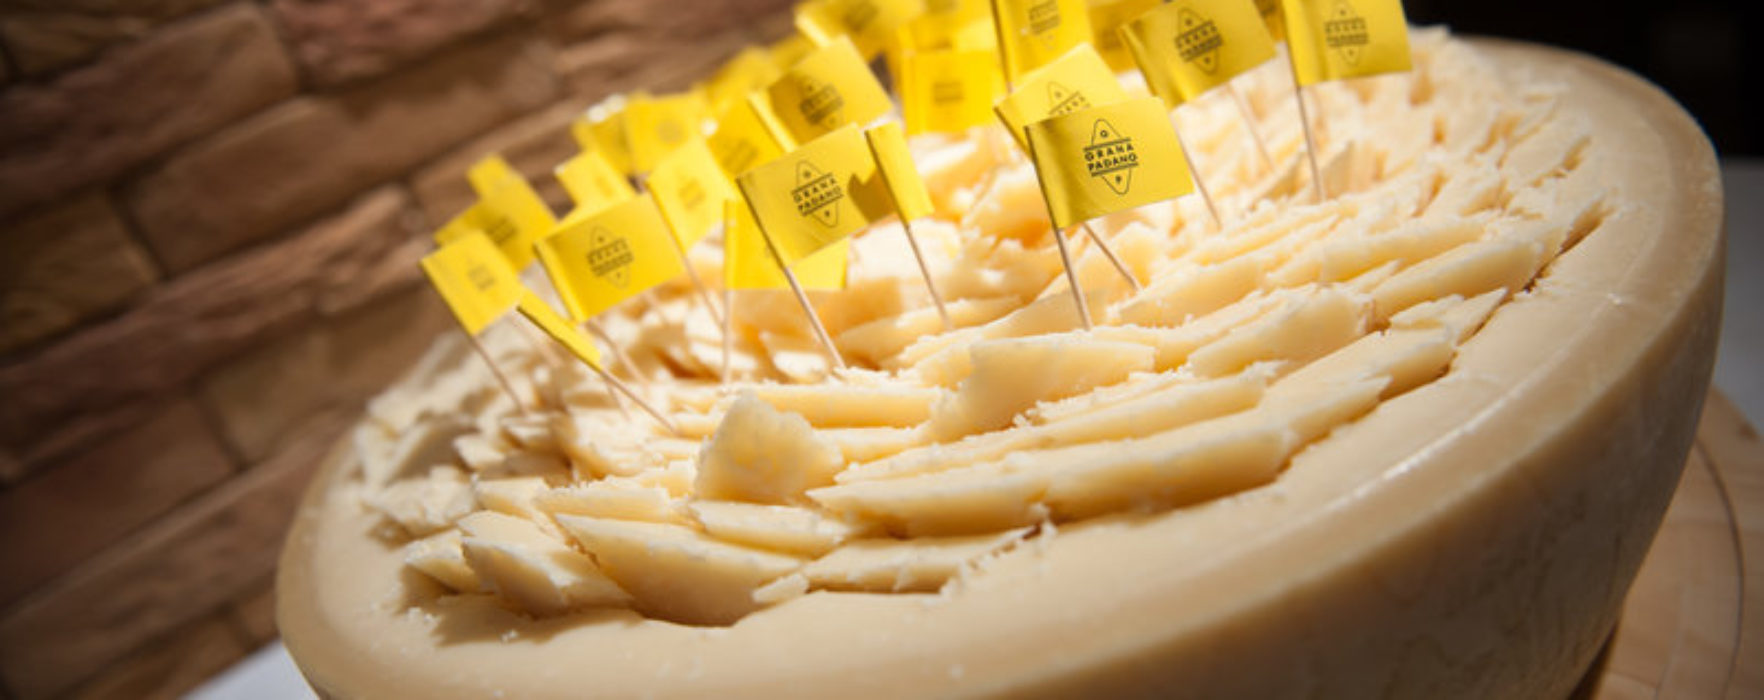 Iconic Italian Eatery In Manchester Introduces Entirely New Menu That's Dedicated To CHEESE